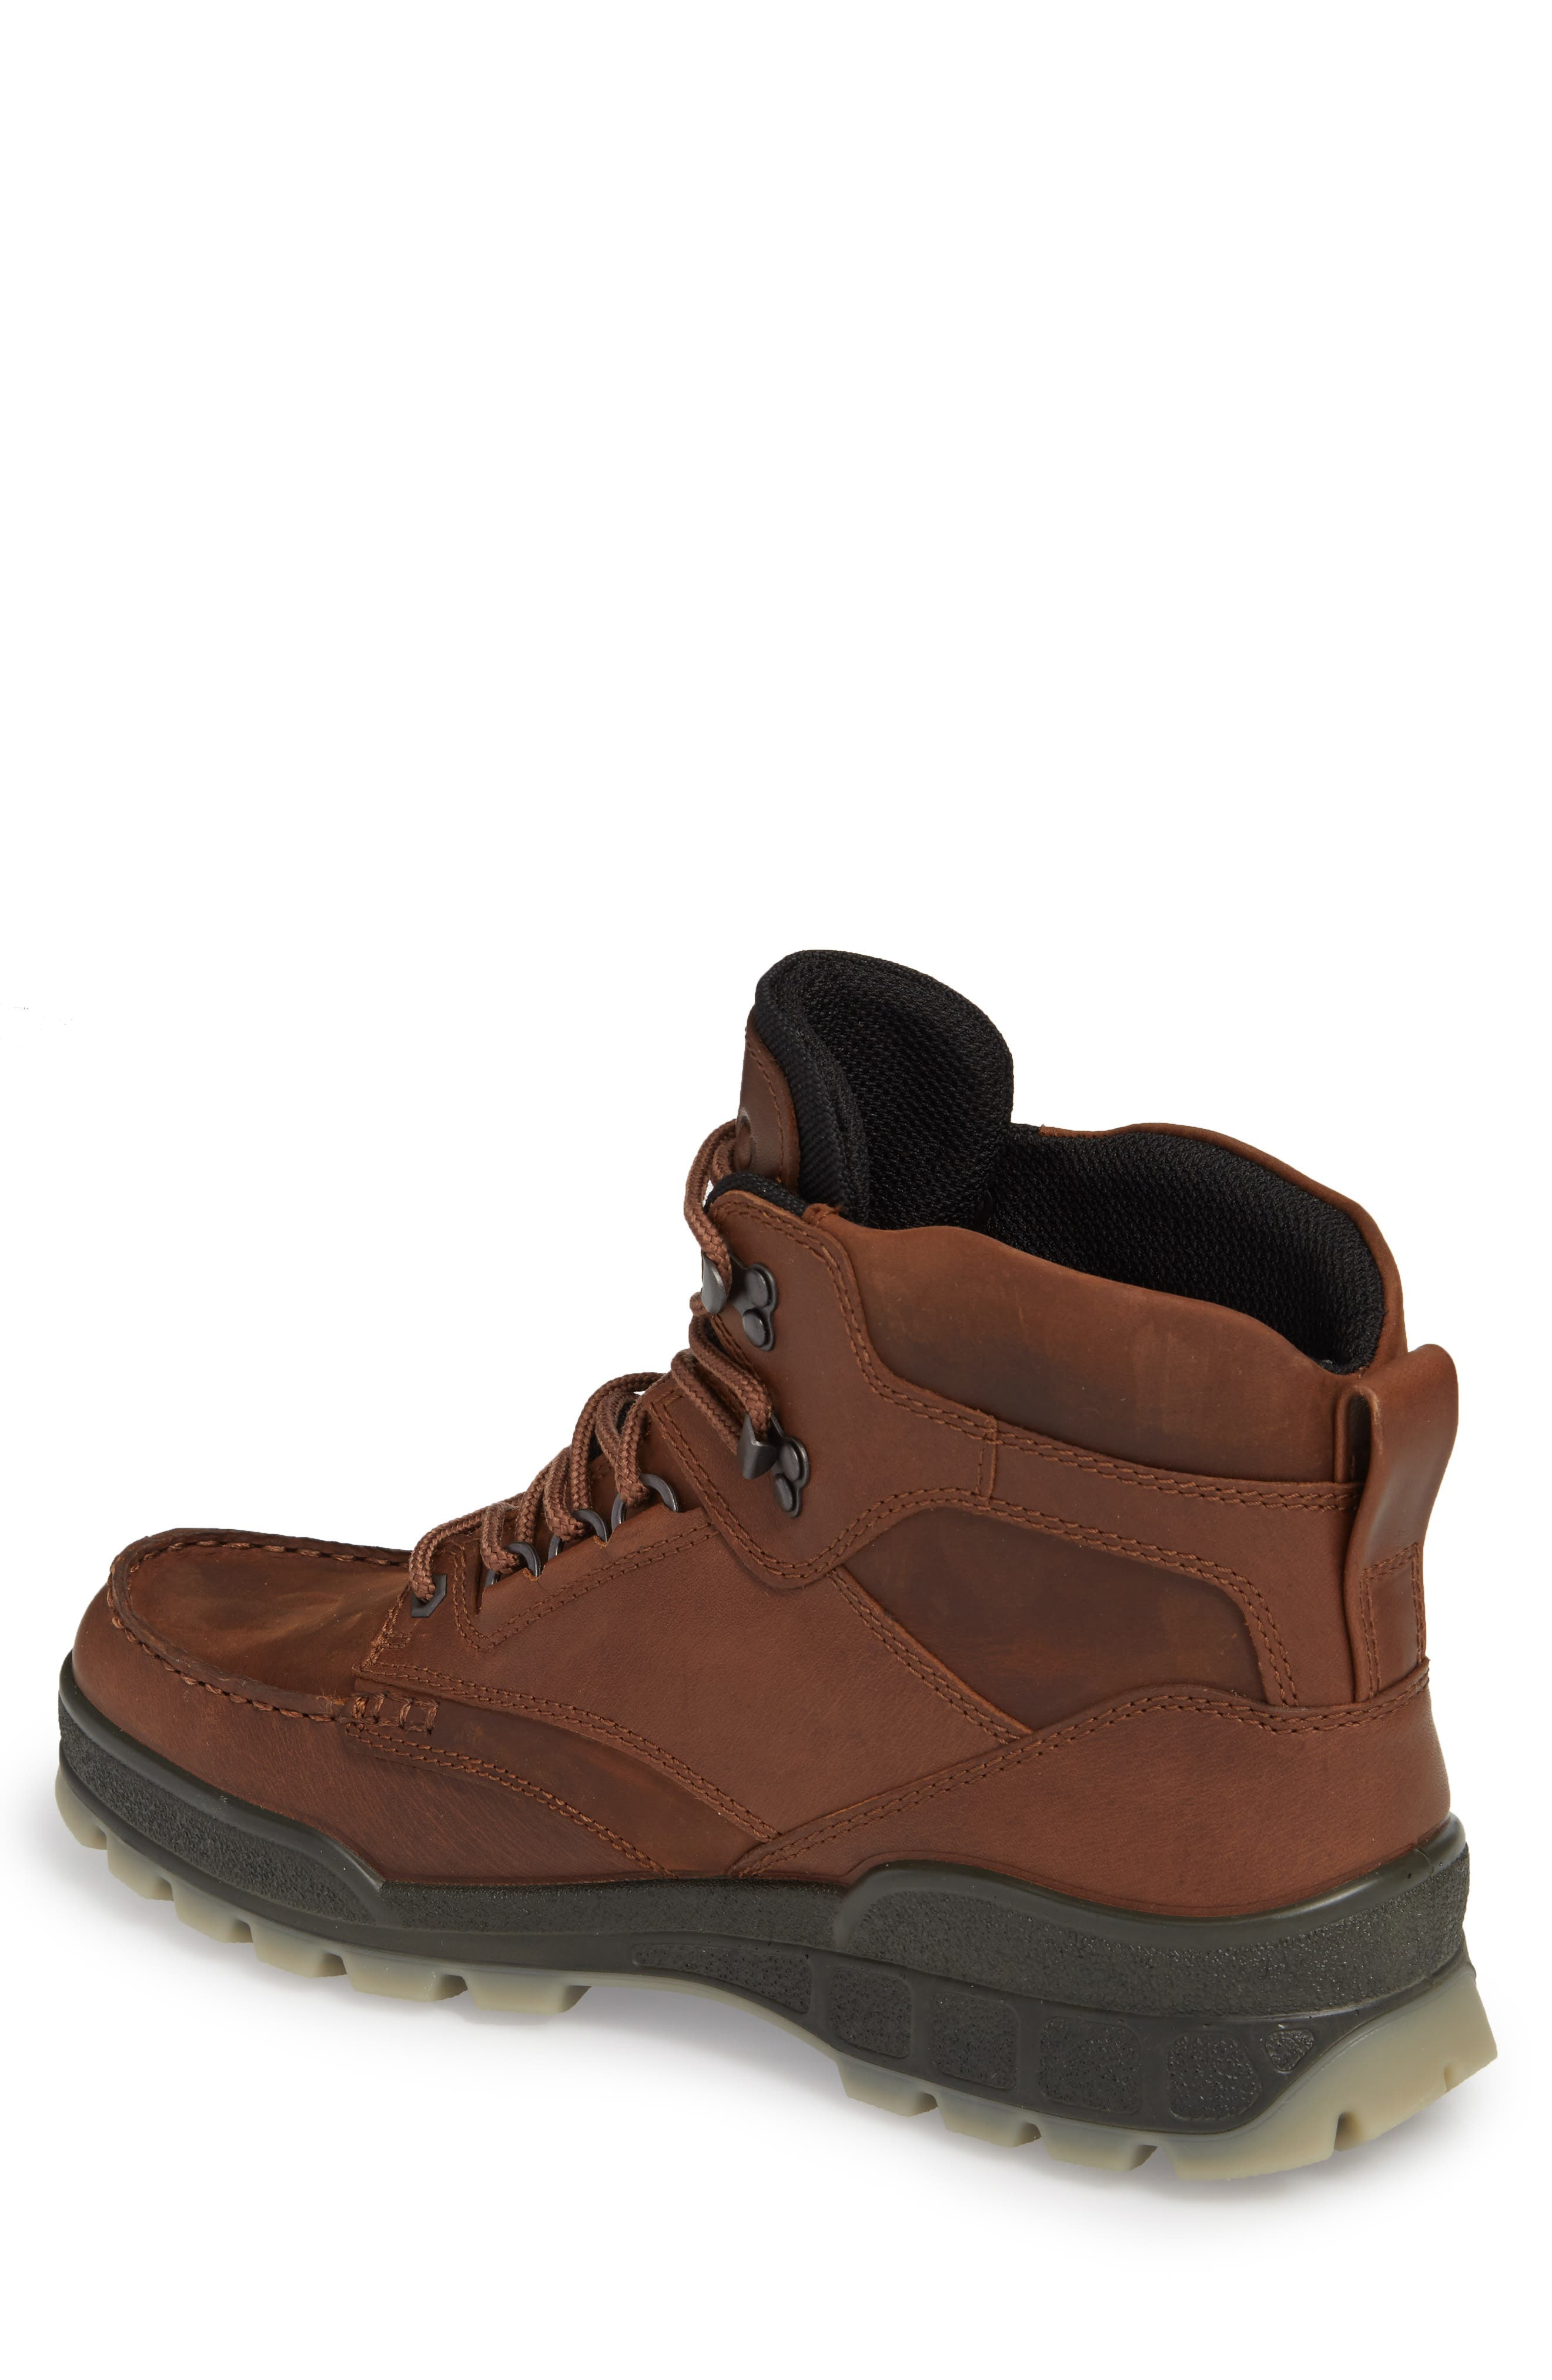 Track II High Boot,                             Alternate thumbnail 3, color,                             Bison